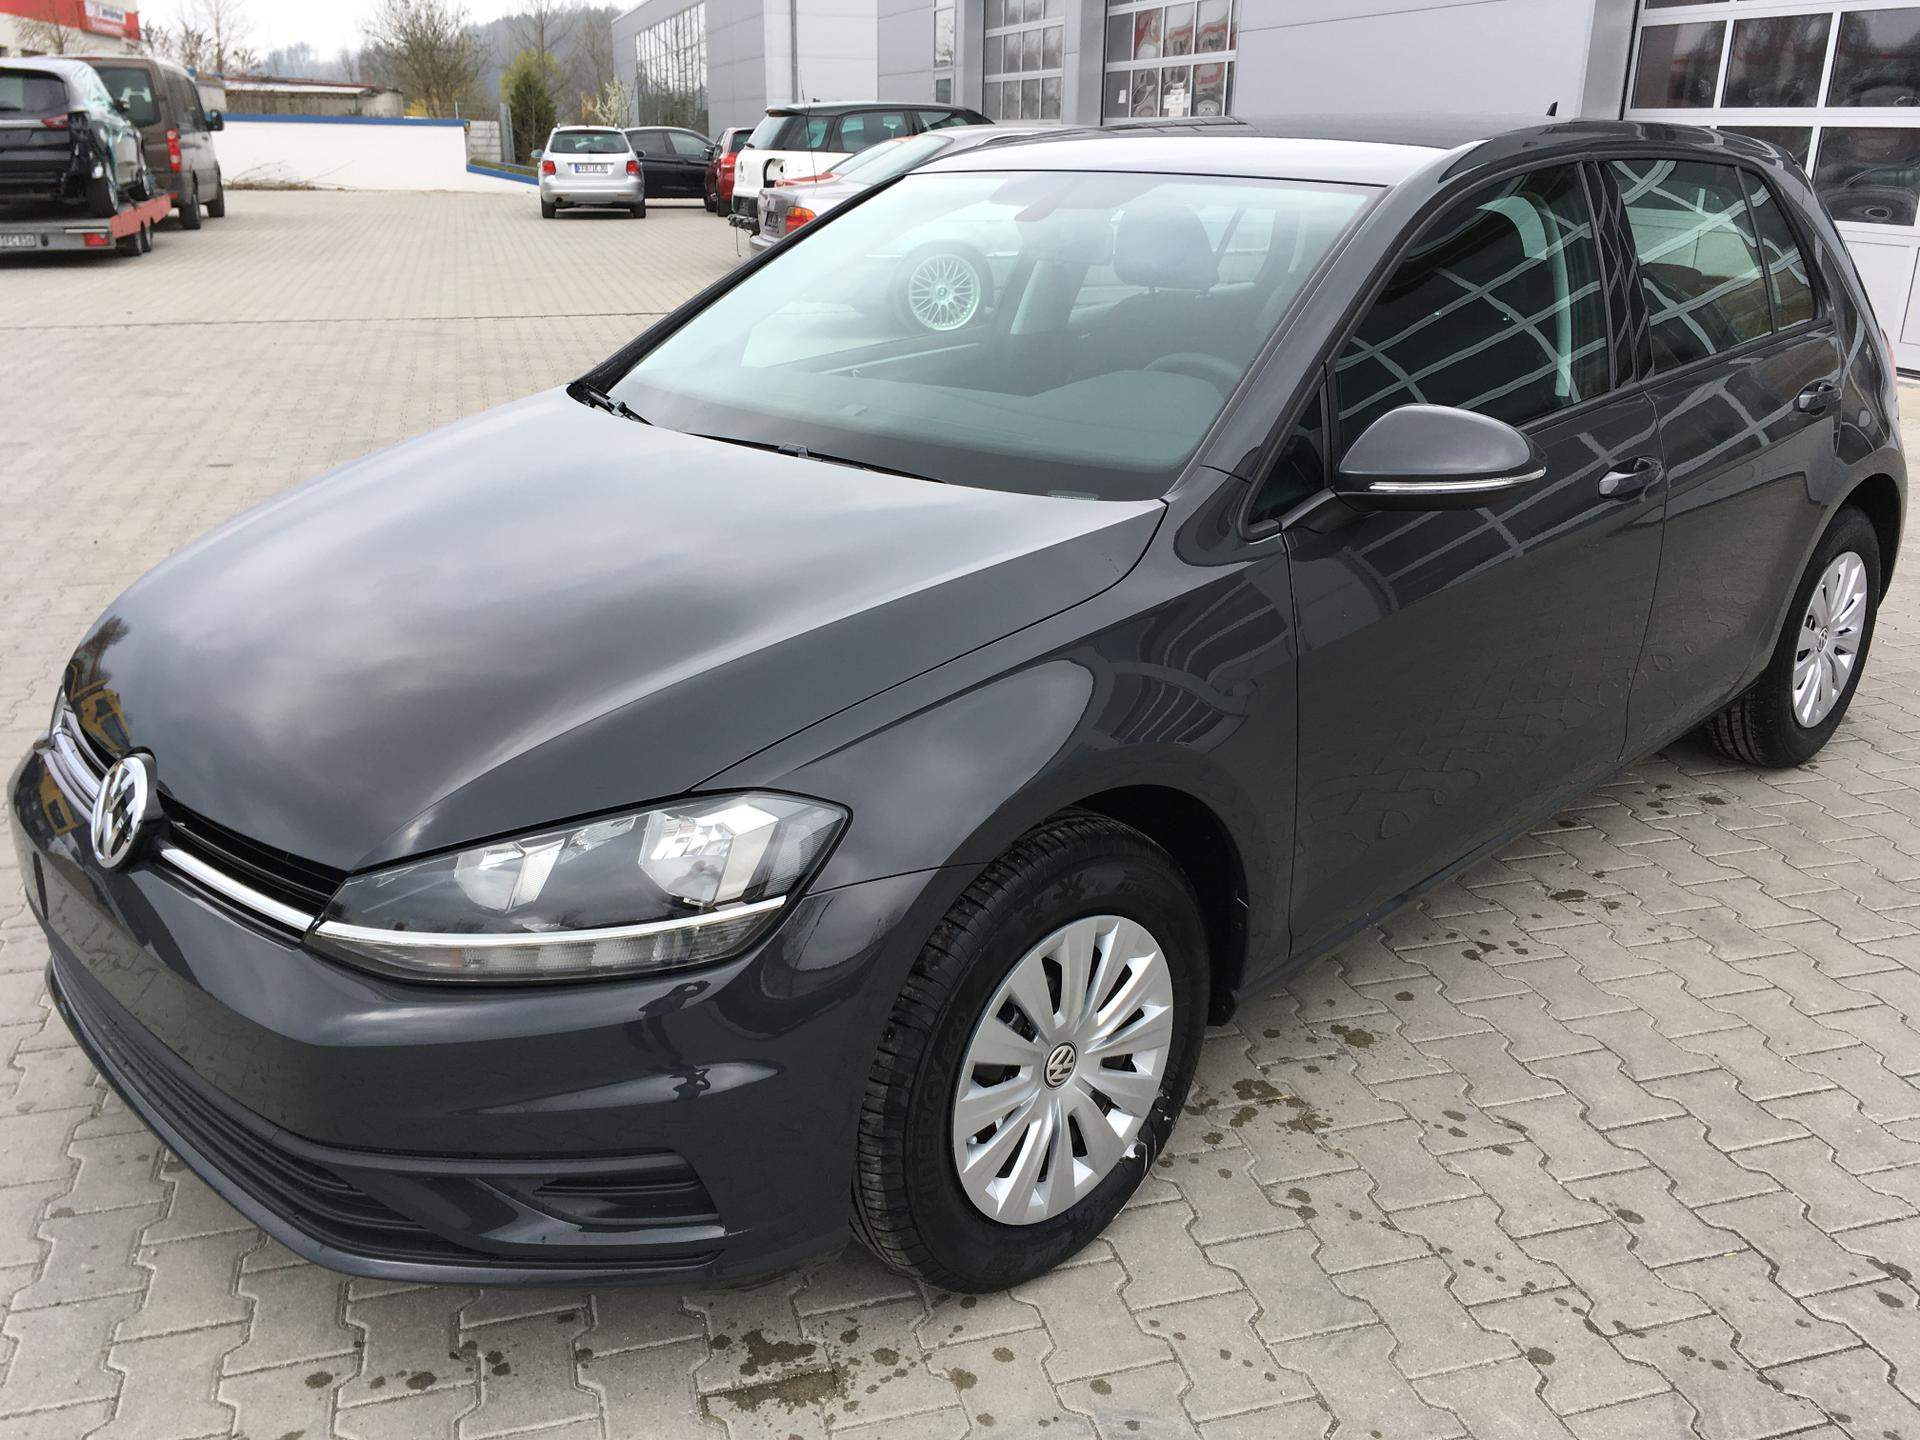 volkswagen golf vii trendline 1 0tsi 81kw neues modell climatronic tempomat bluetoot reimport. Black Bedroom Furniture Sets. Home Design Ideas